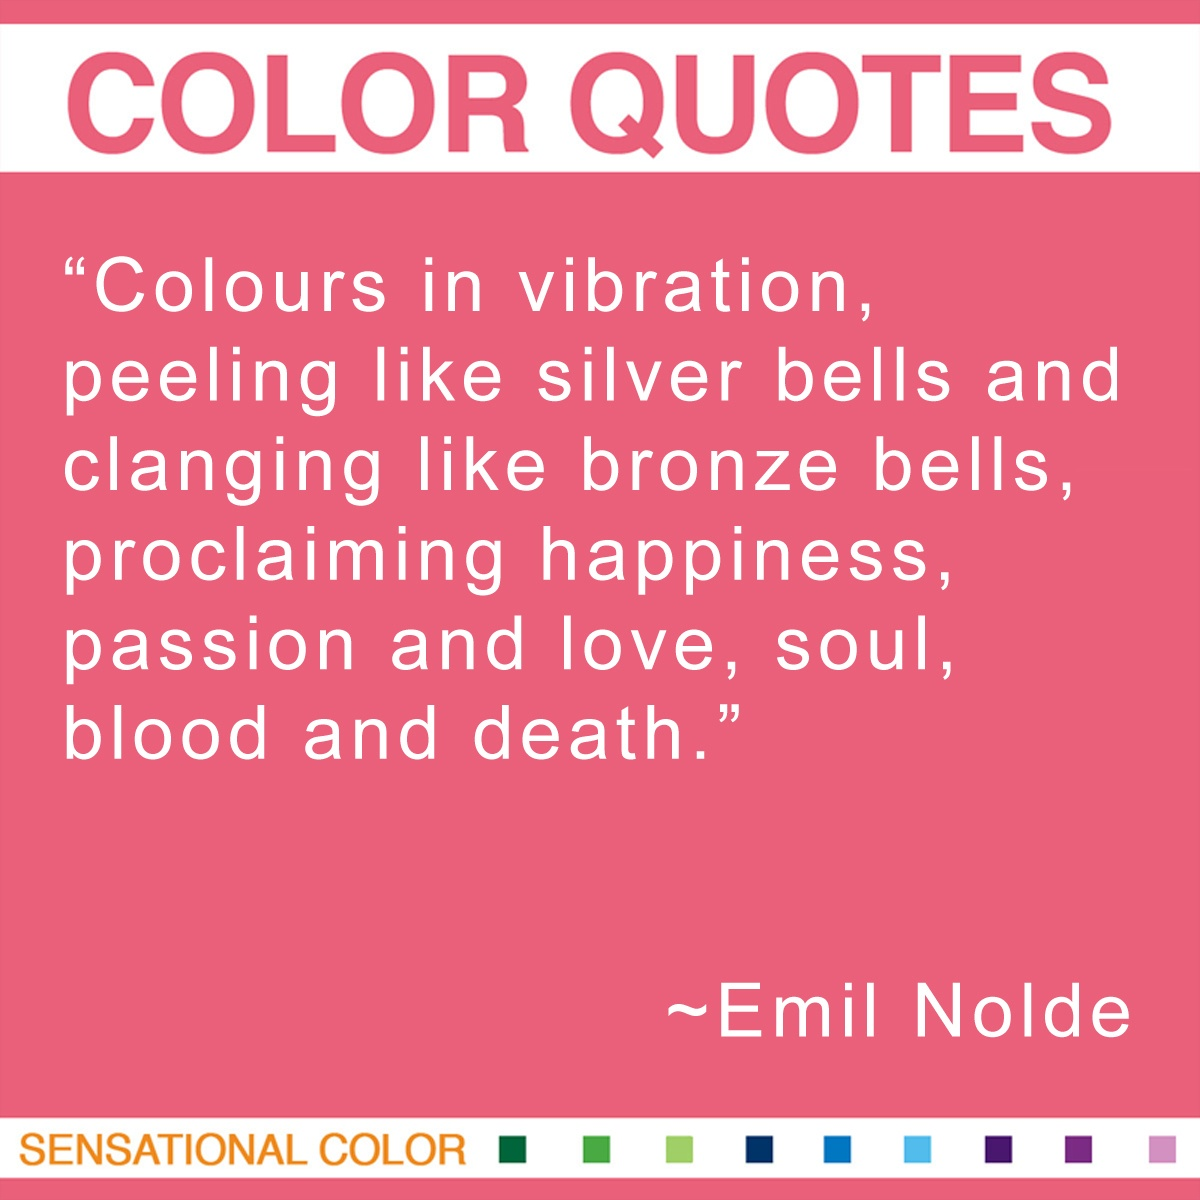 """Colours in vibration, peeling like silver bells and clanging like bronze bells, proclaiming happiness, passion and love, soul, blood and death."" - Emil Nolde"